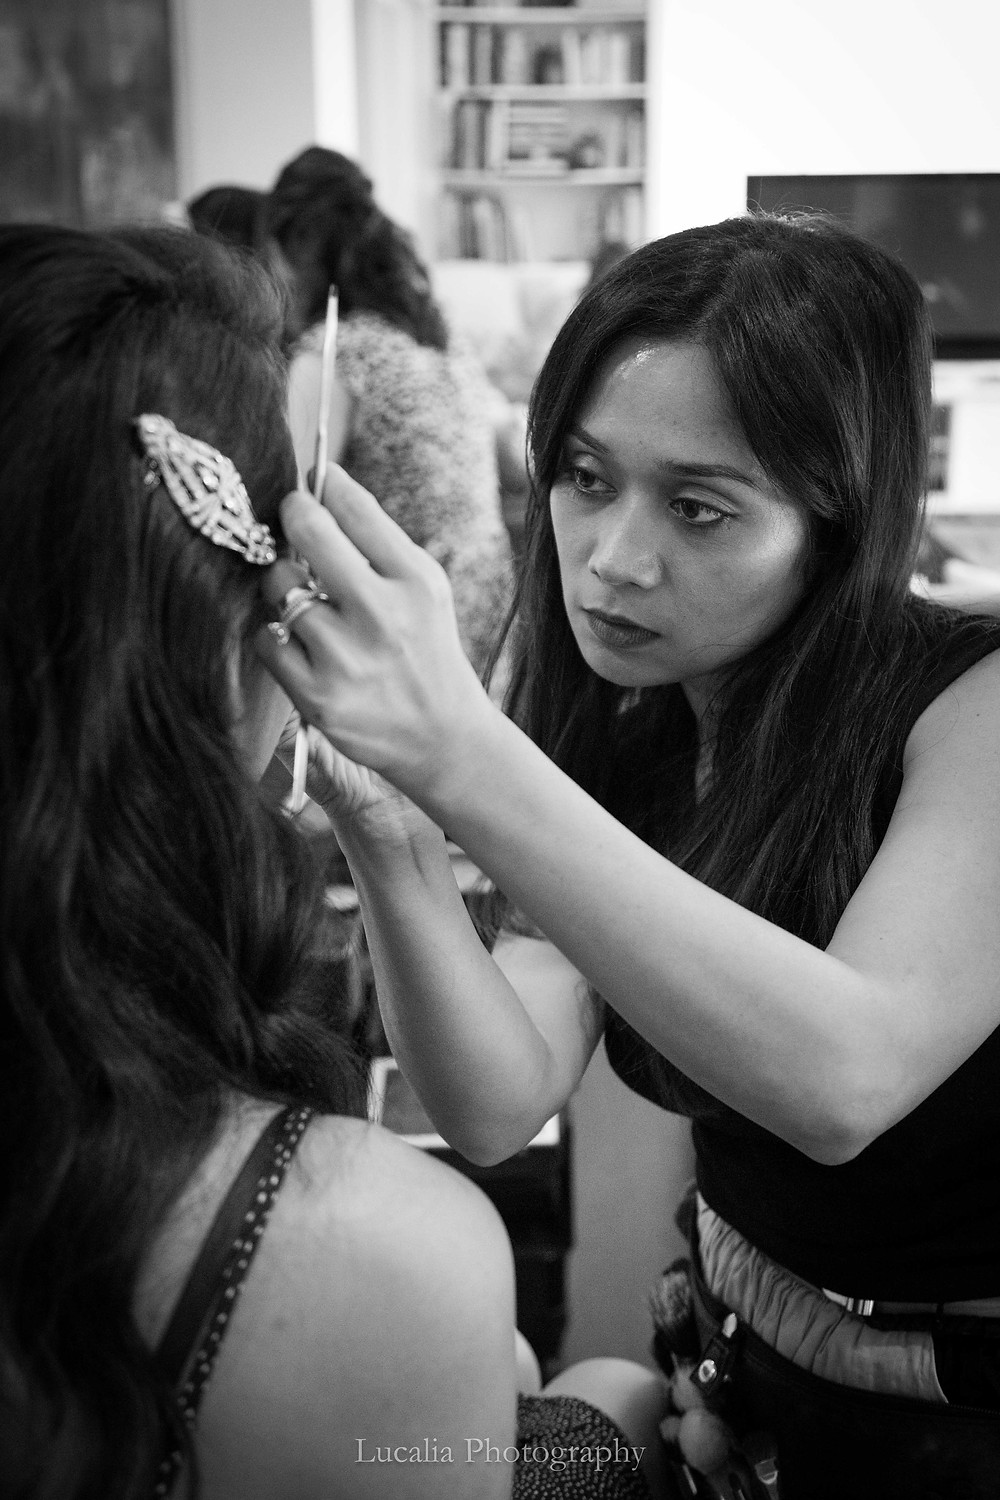 Cay Duque applying makeup to a bride in NSW